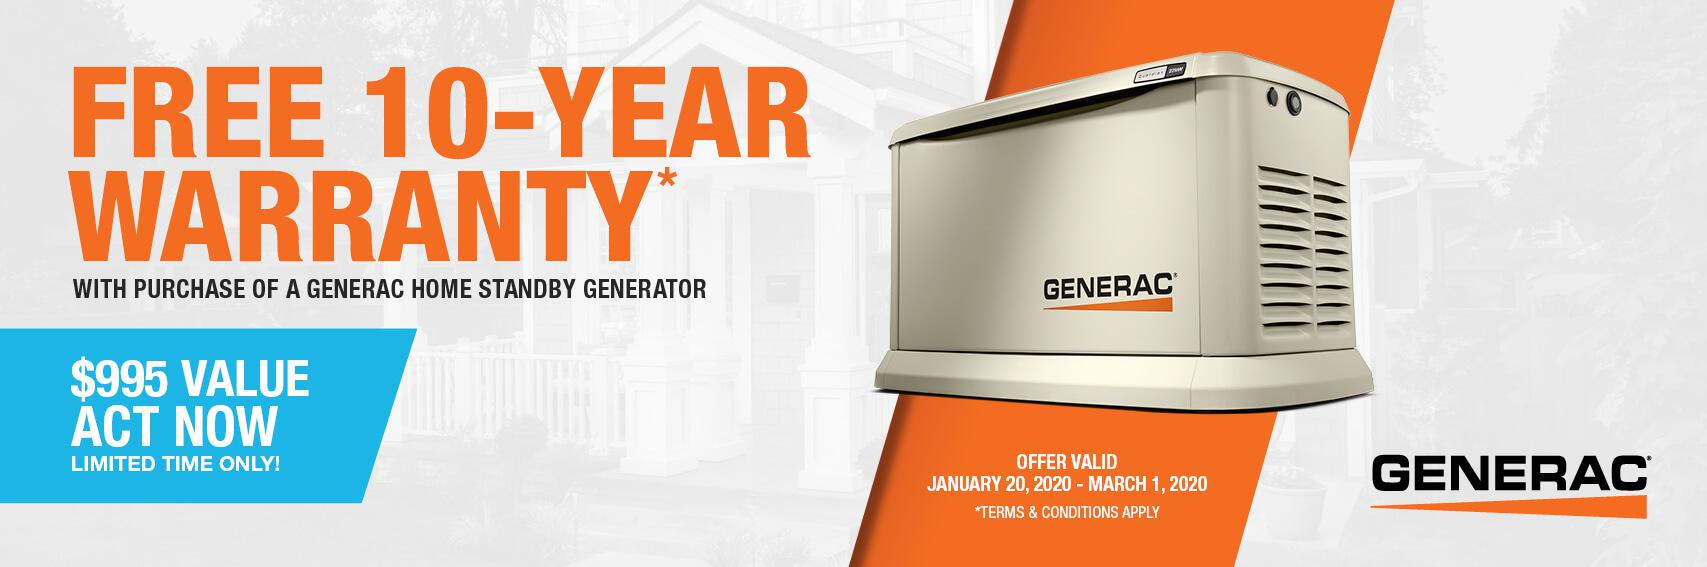 Homestandby Generator Deal | Warranty Offer | Generac Dealer | Bethel, OH